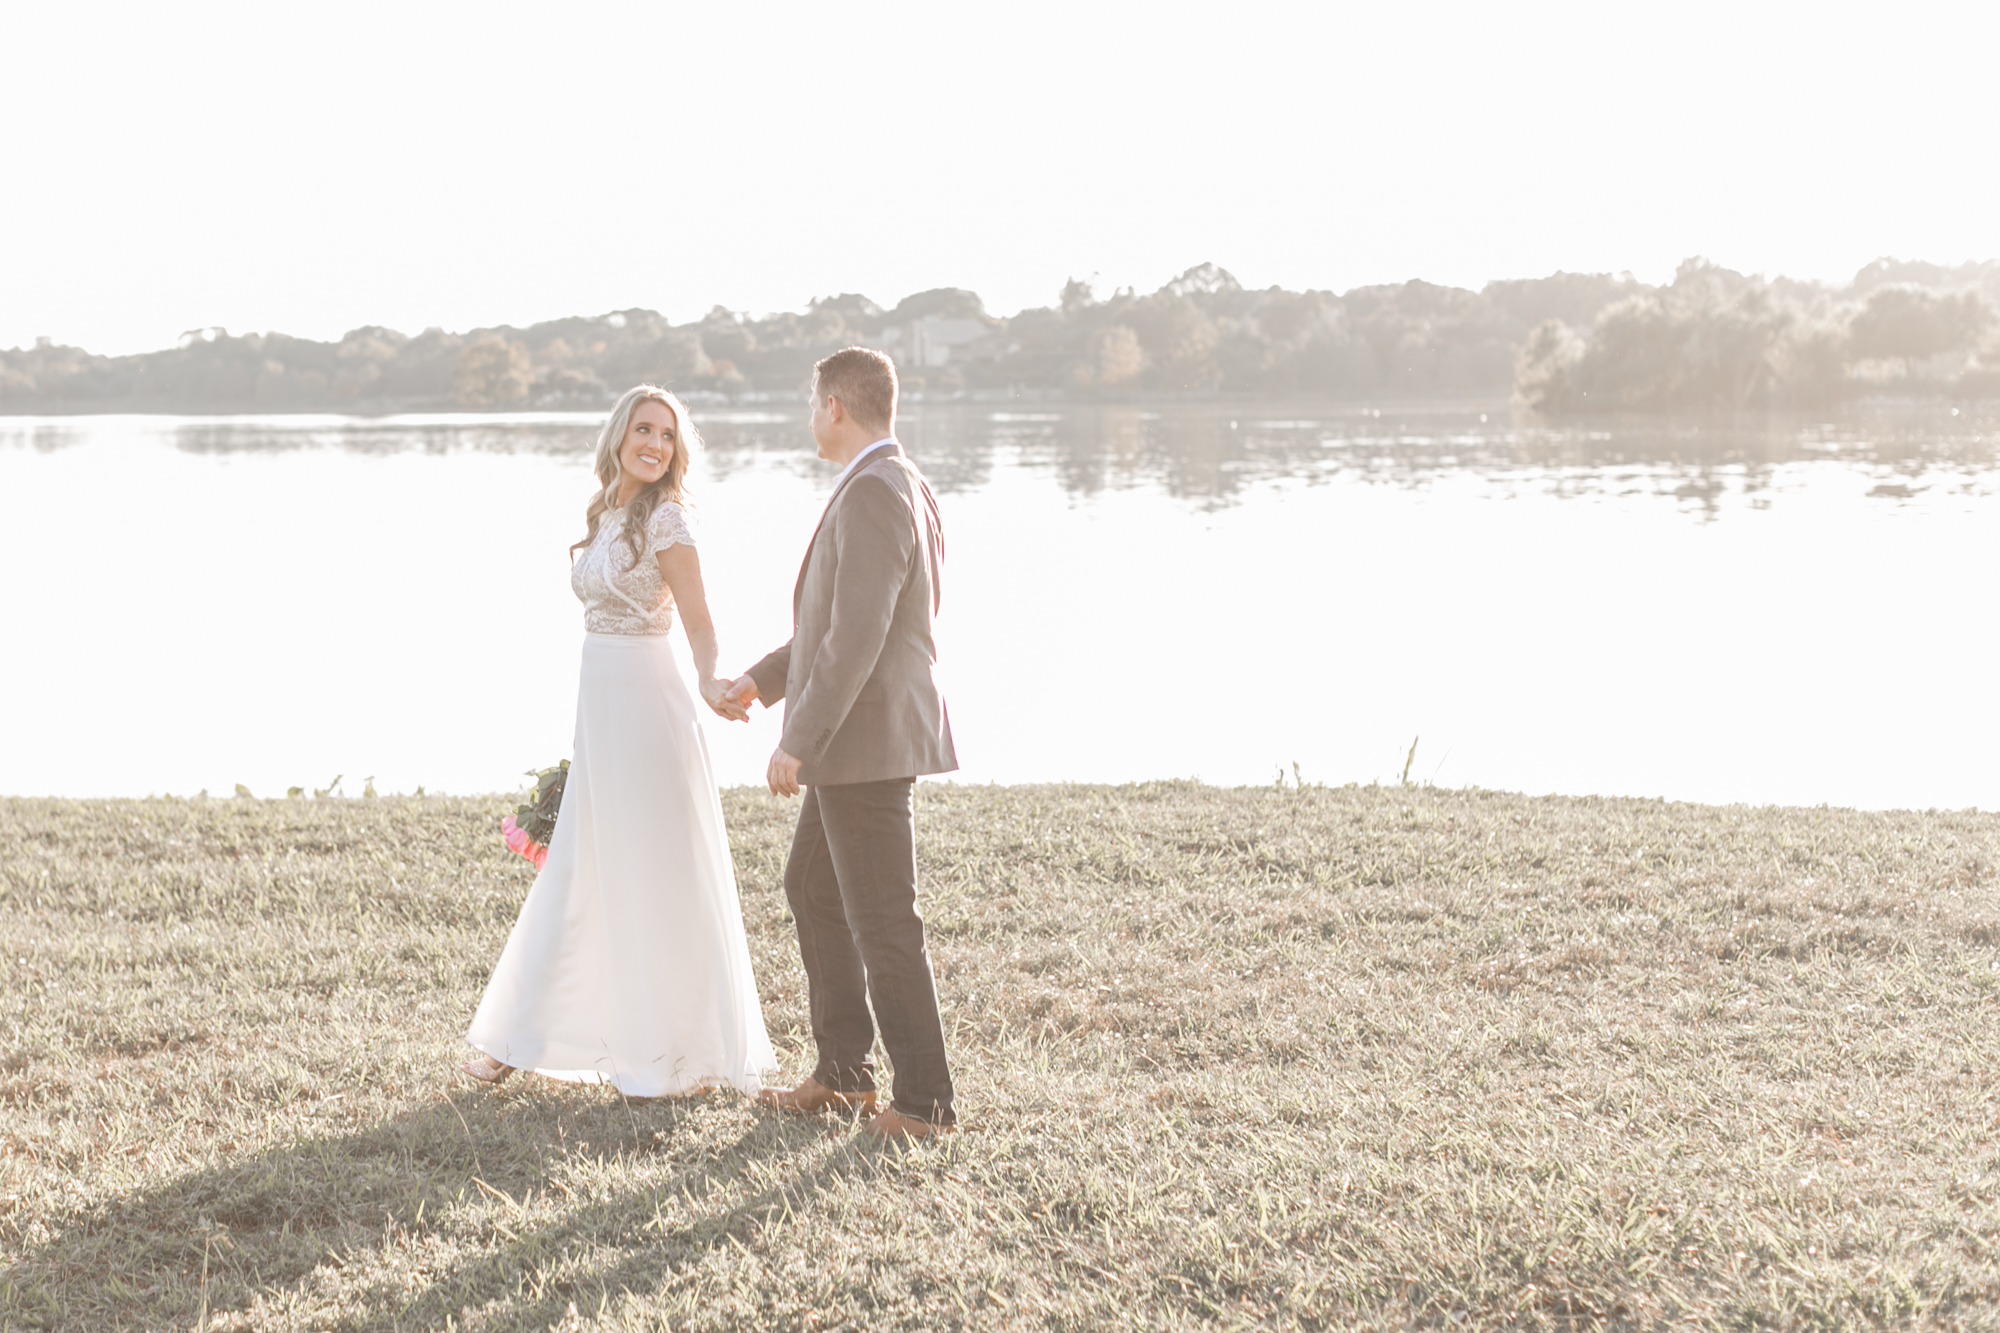 dallas engagement photography ideas by 527photo